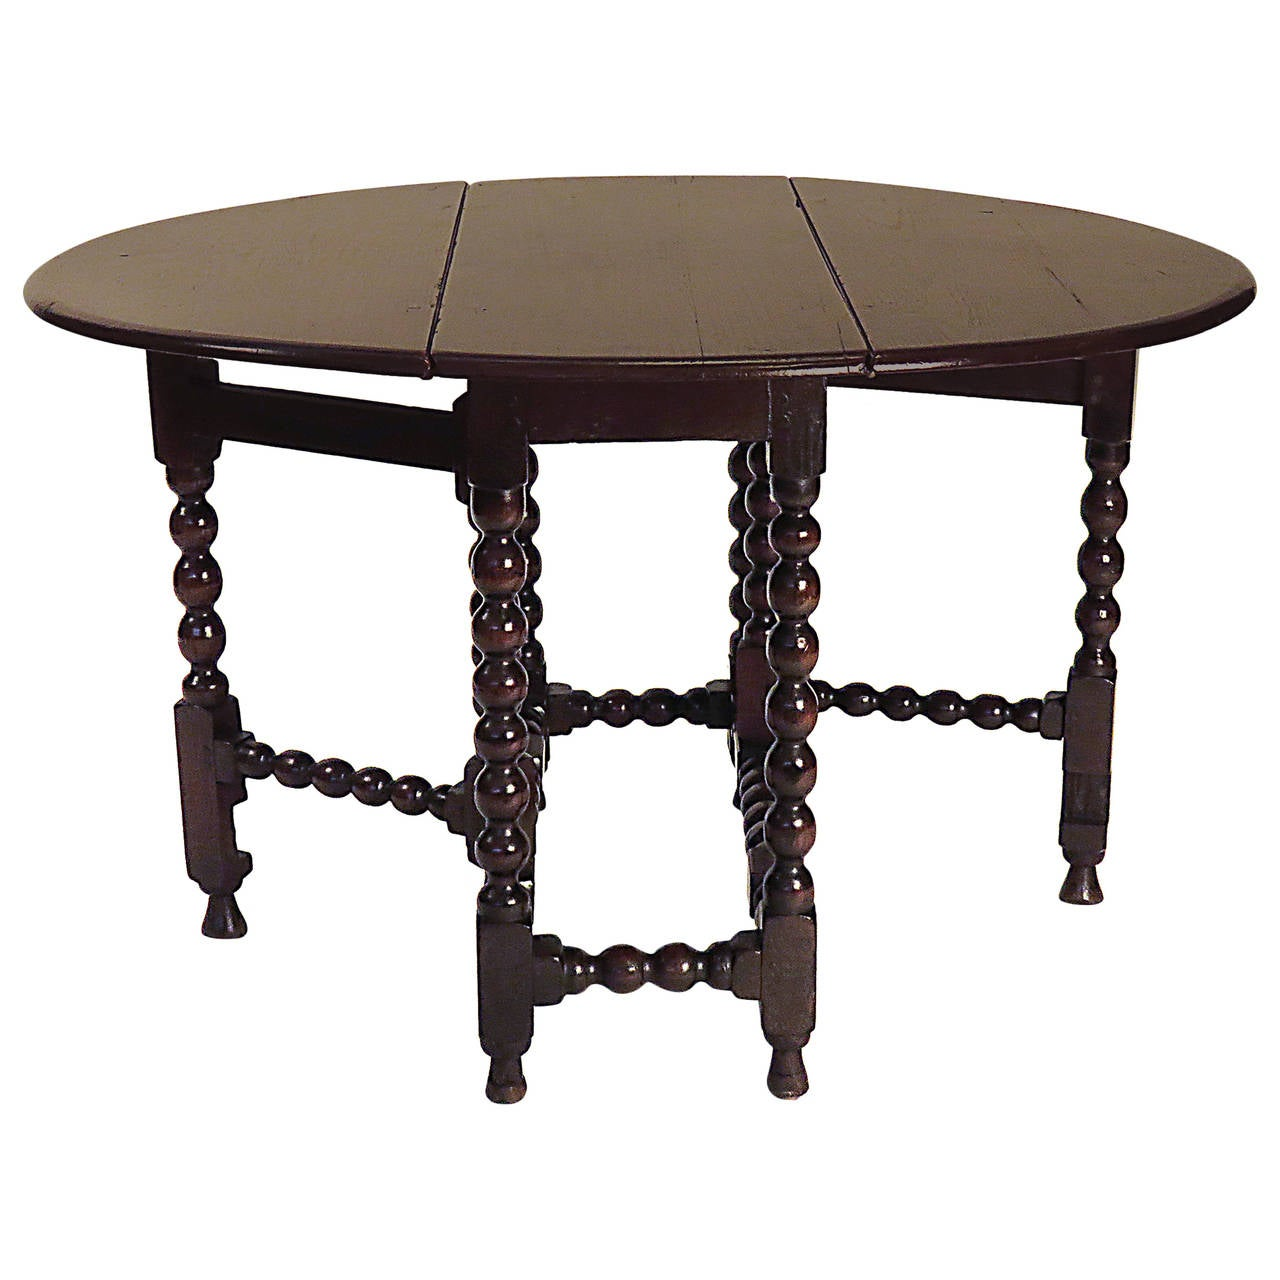 Charles II Provincial Round English Oak Drop Leaf Table, Circa 1680 For Sale